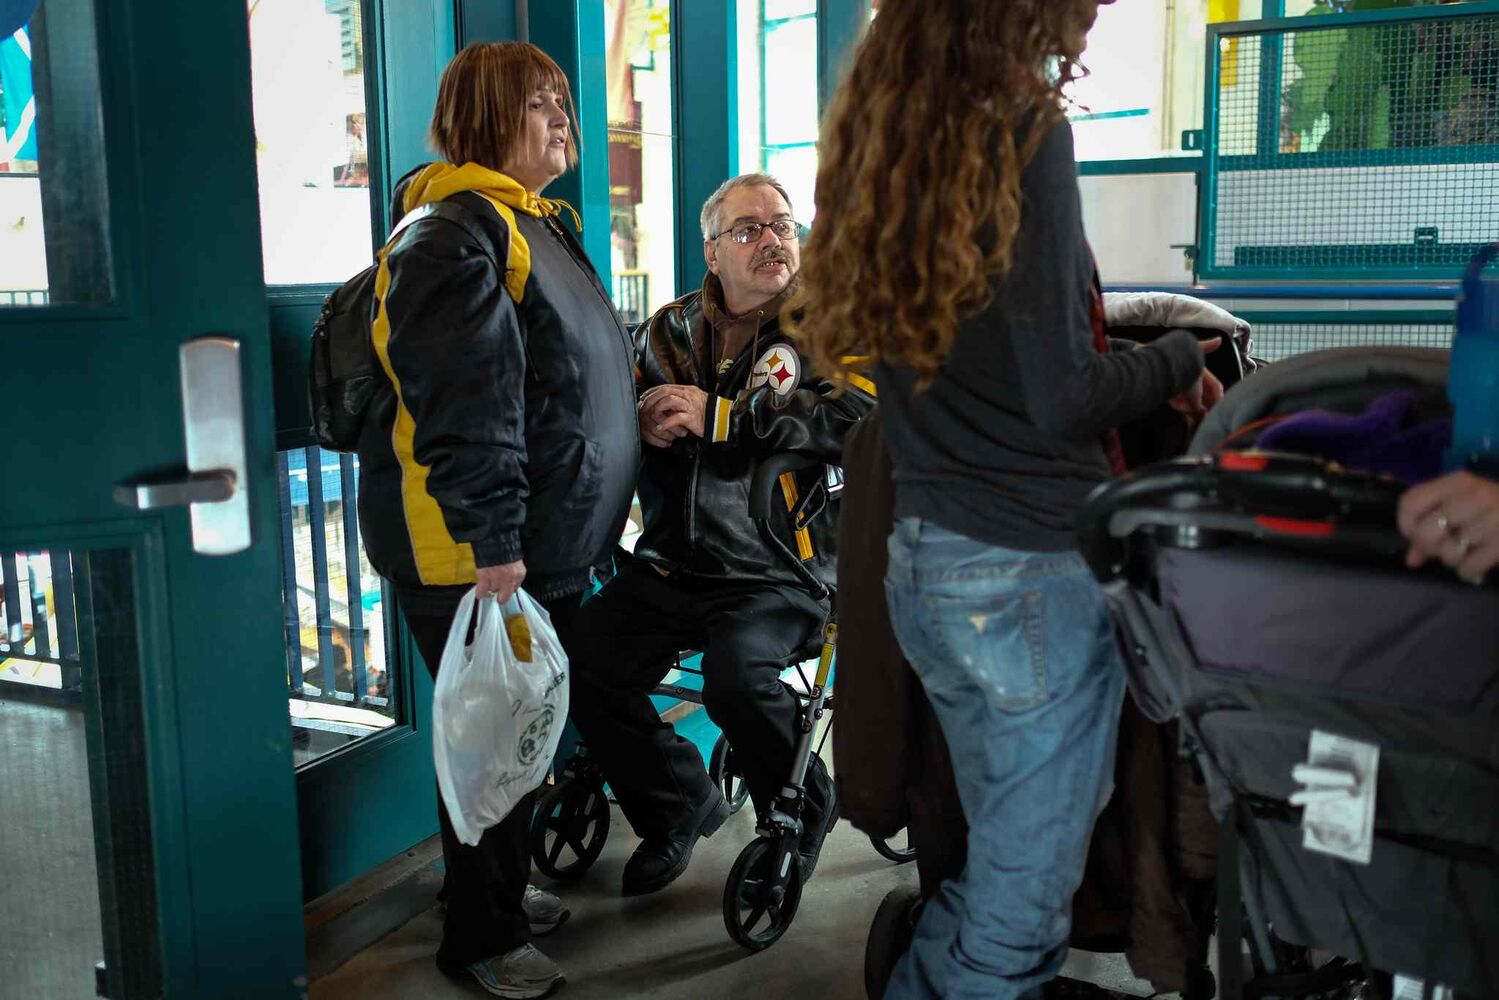 Waiting to take the elevator at The Forks.